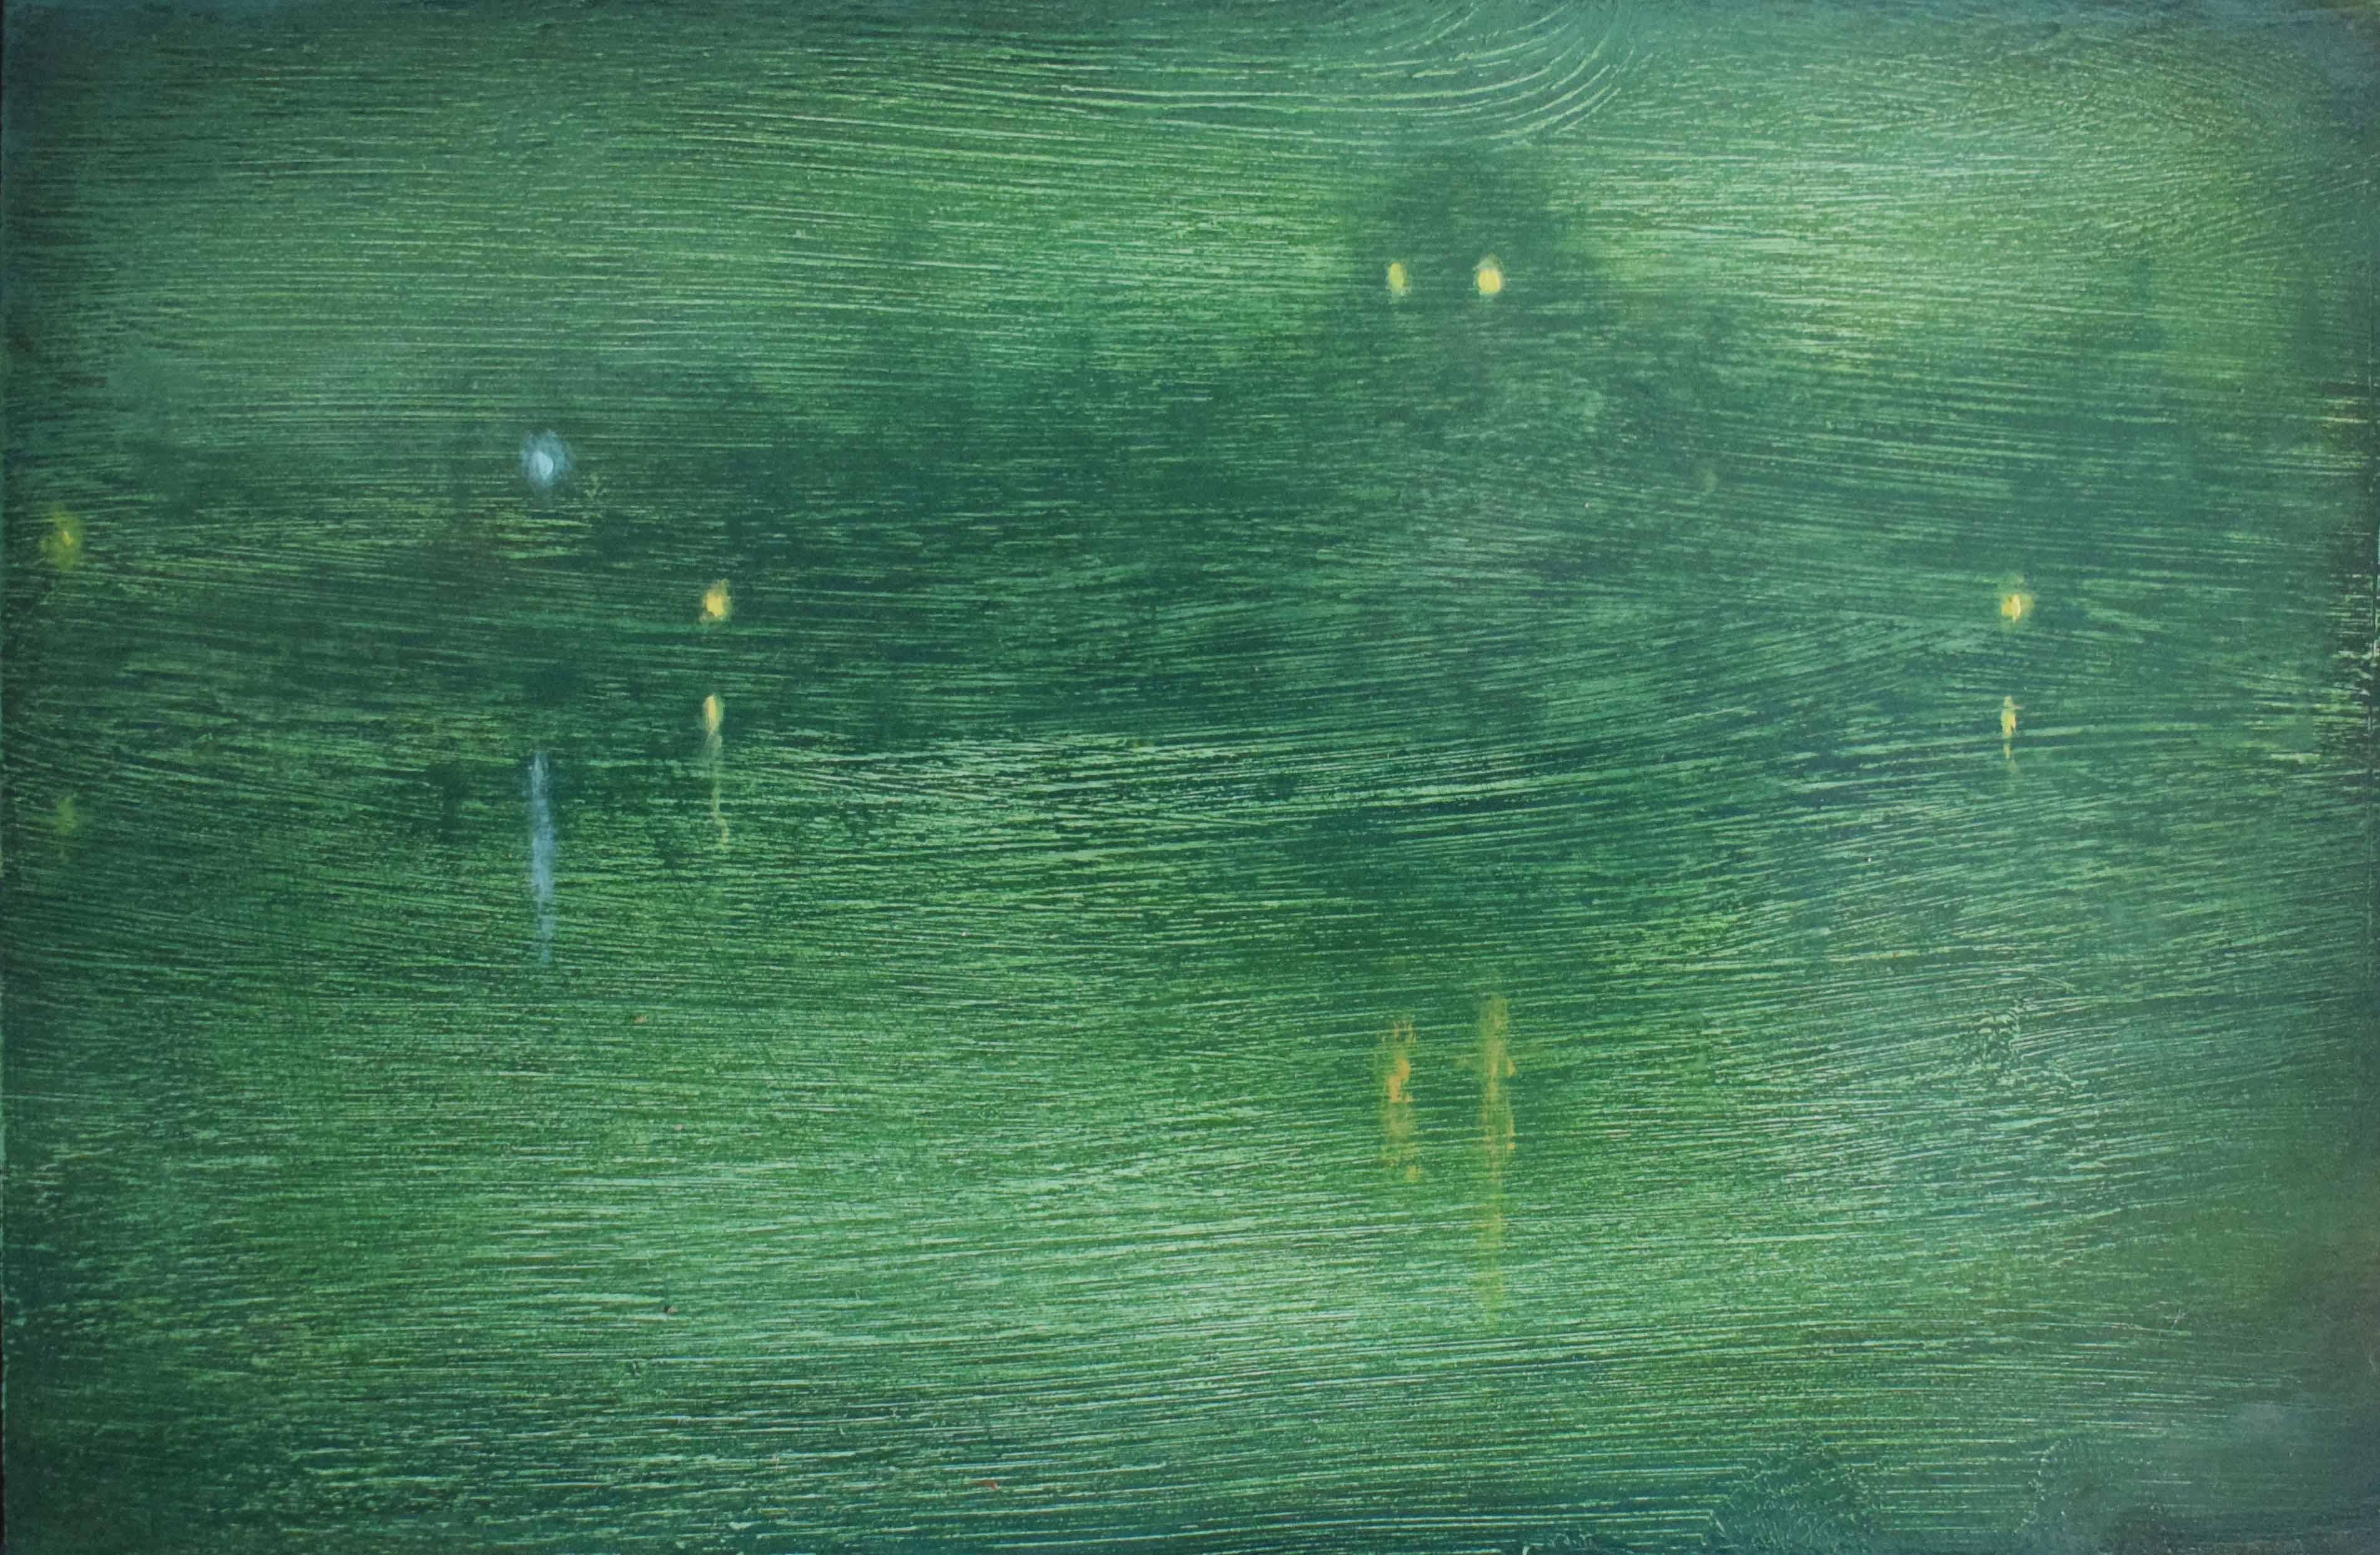 Nocturne in Green